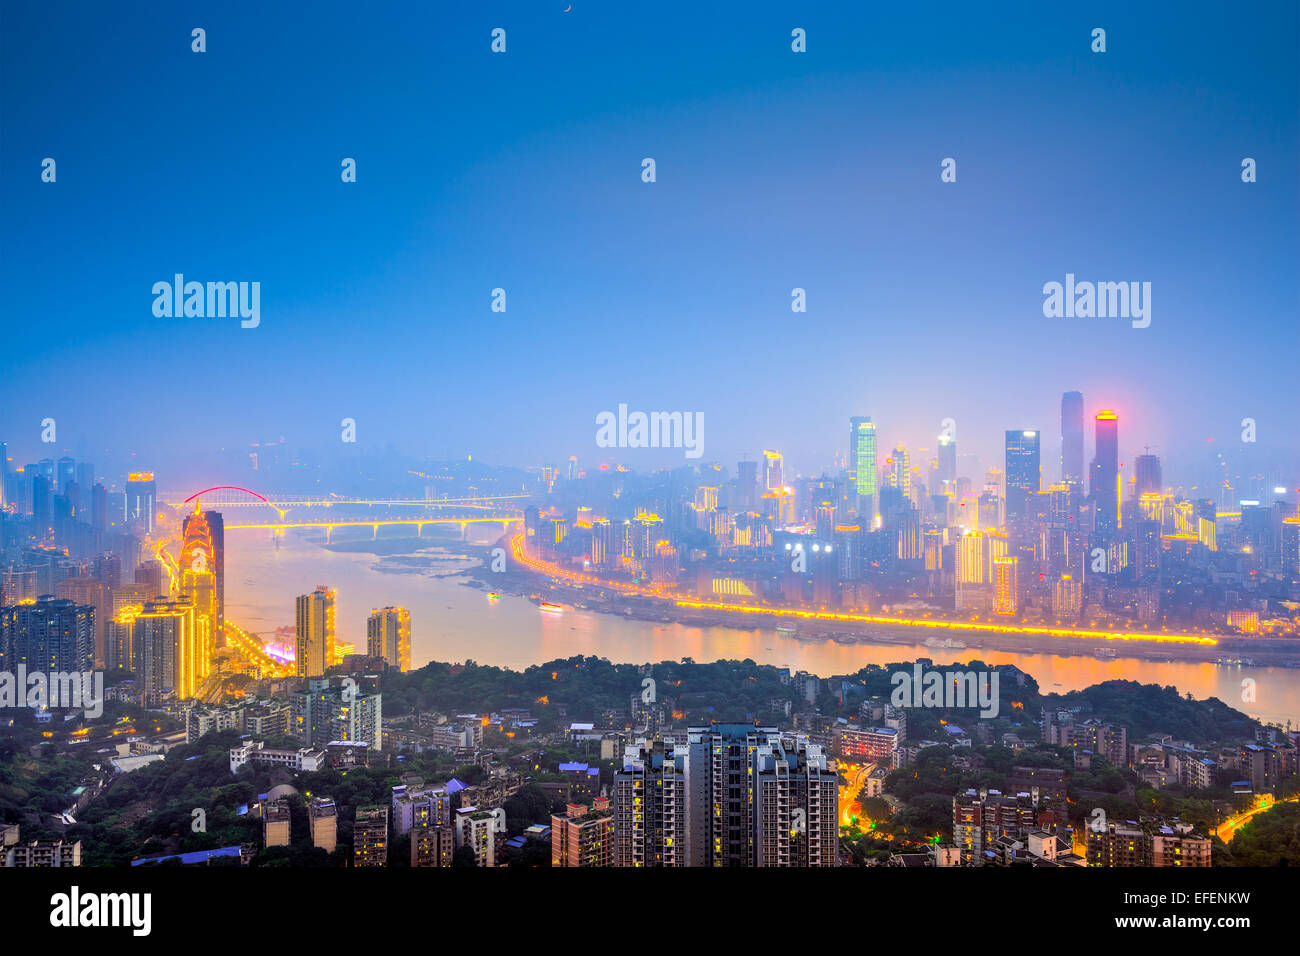 Chongqing, China downtown city skyline over the Yangtze River. - Stock Image